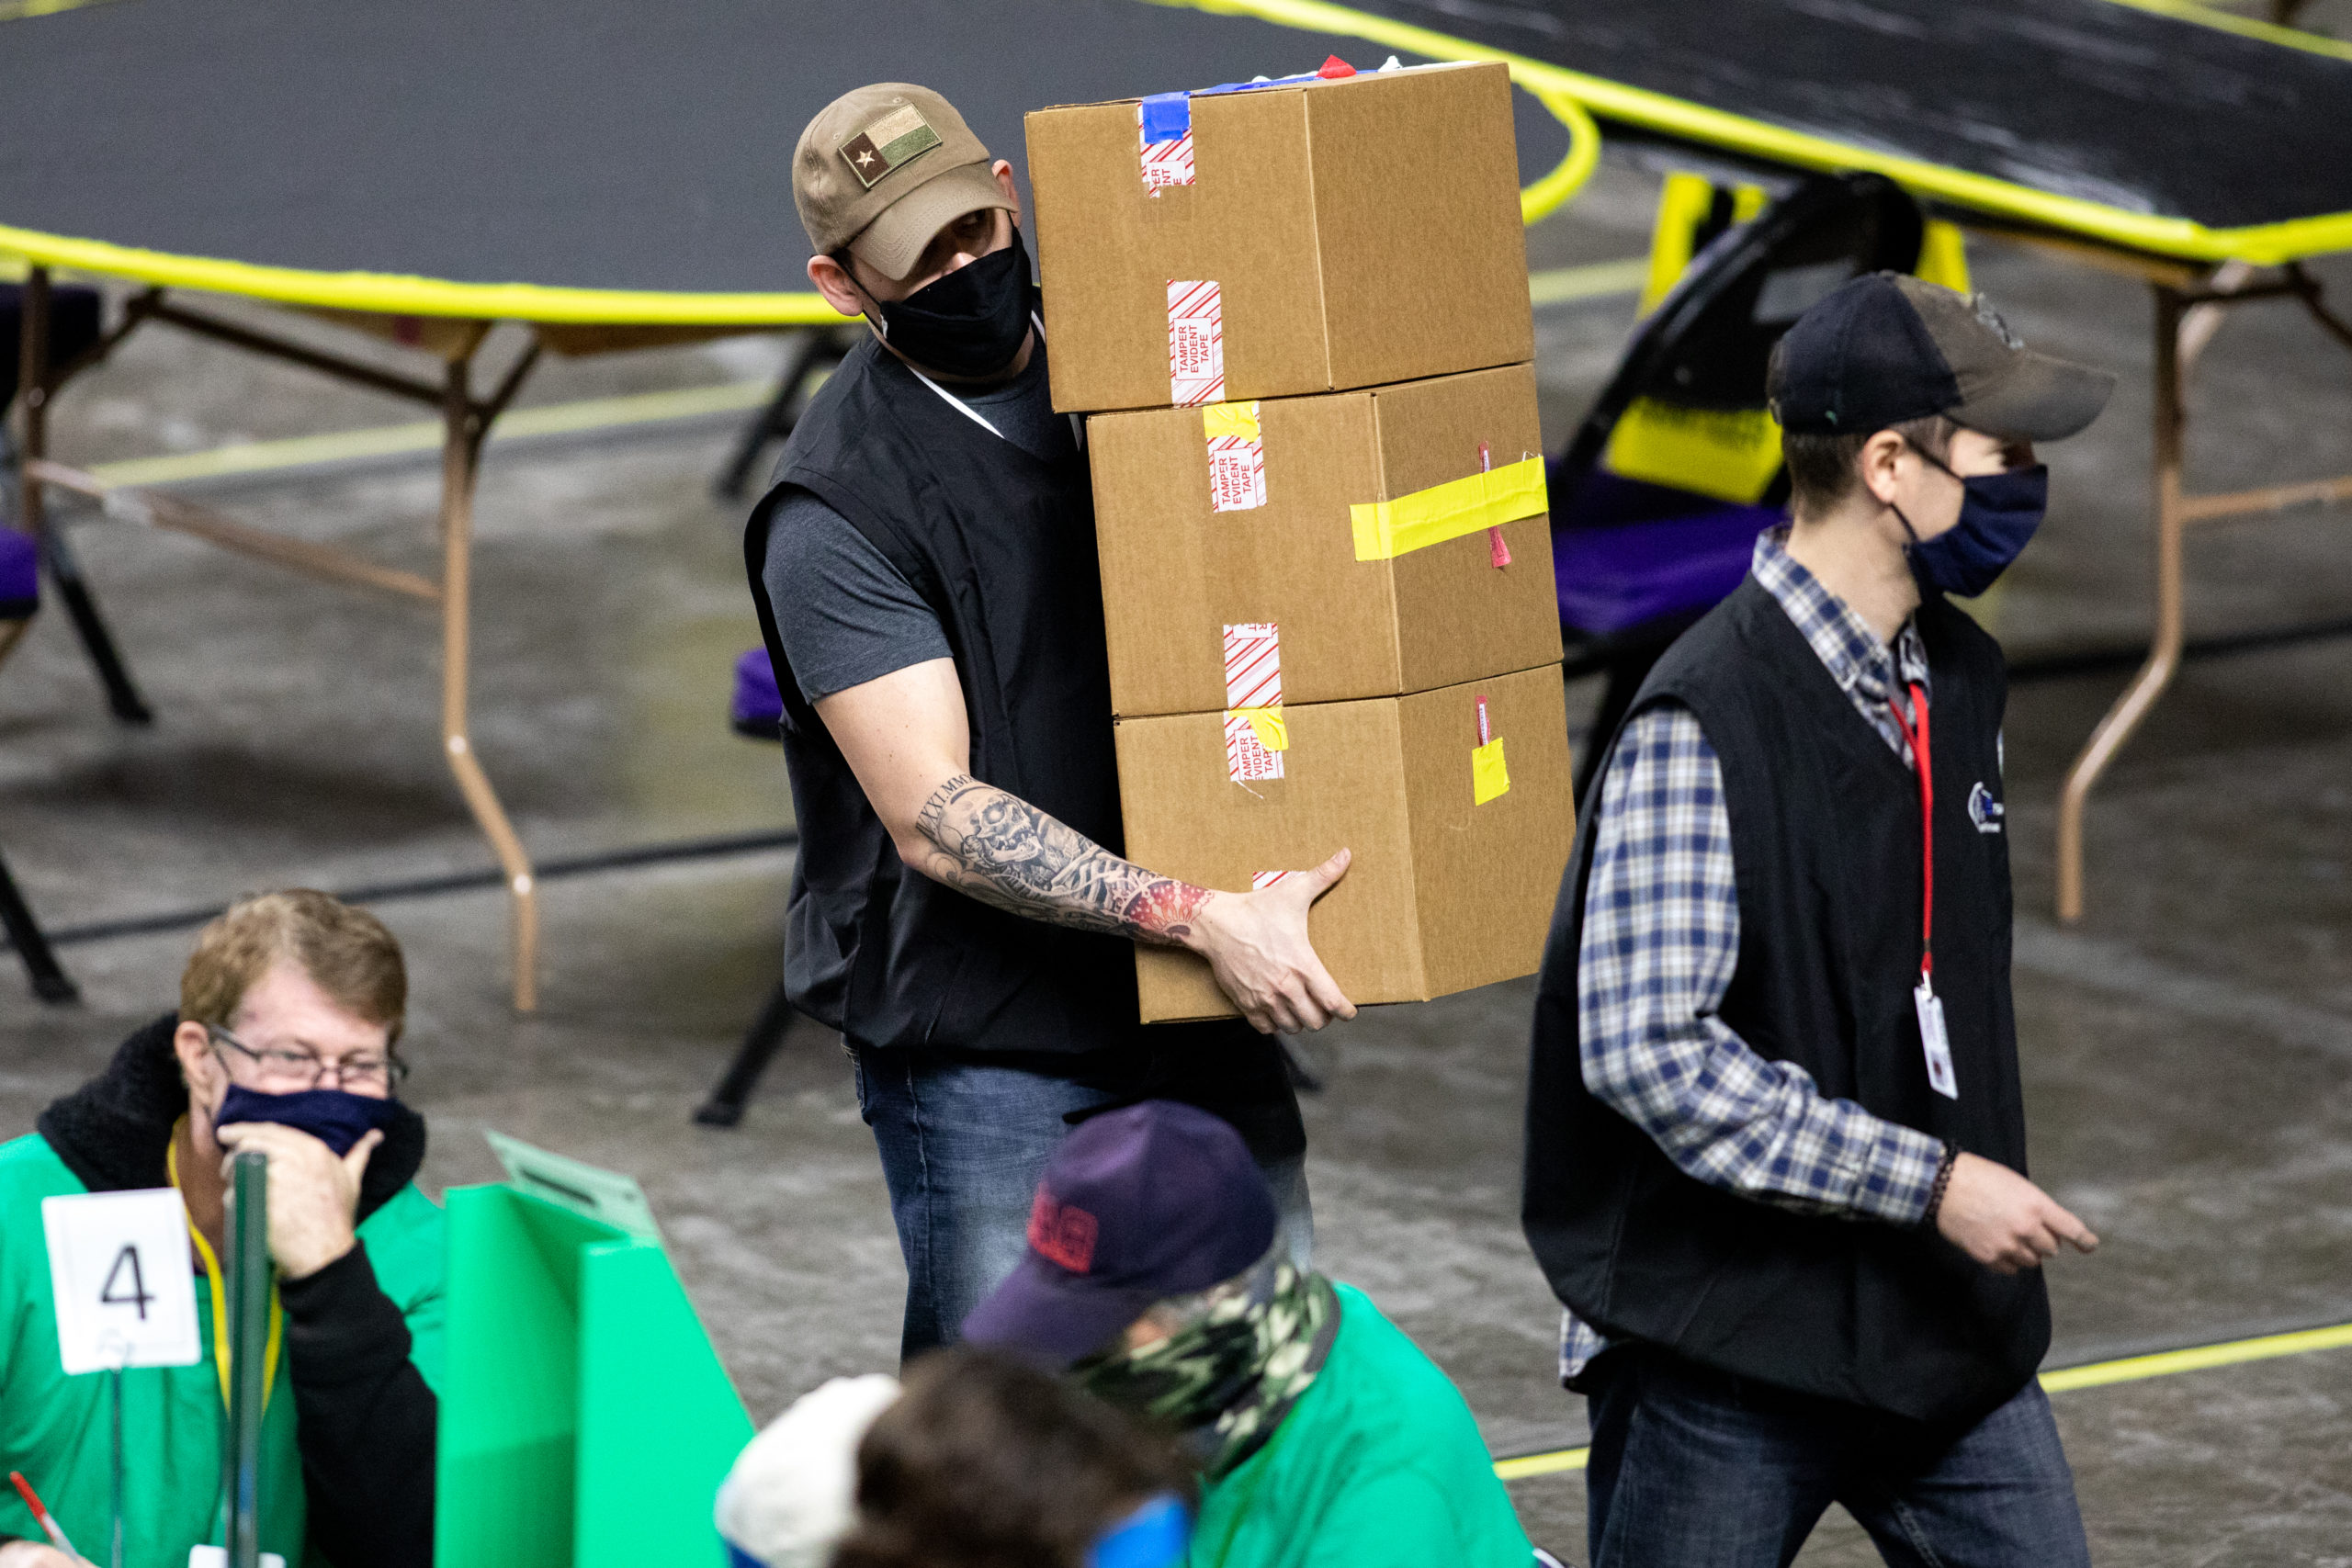 Workers hired by the Arizona State Senate examine and recount ballots from the 2020 general election at Veterans Memorial Coliseum on May 1 in Phoenix, Arizona. (Courtney Pedroza/Getty Images)